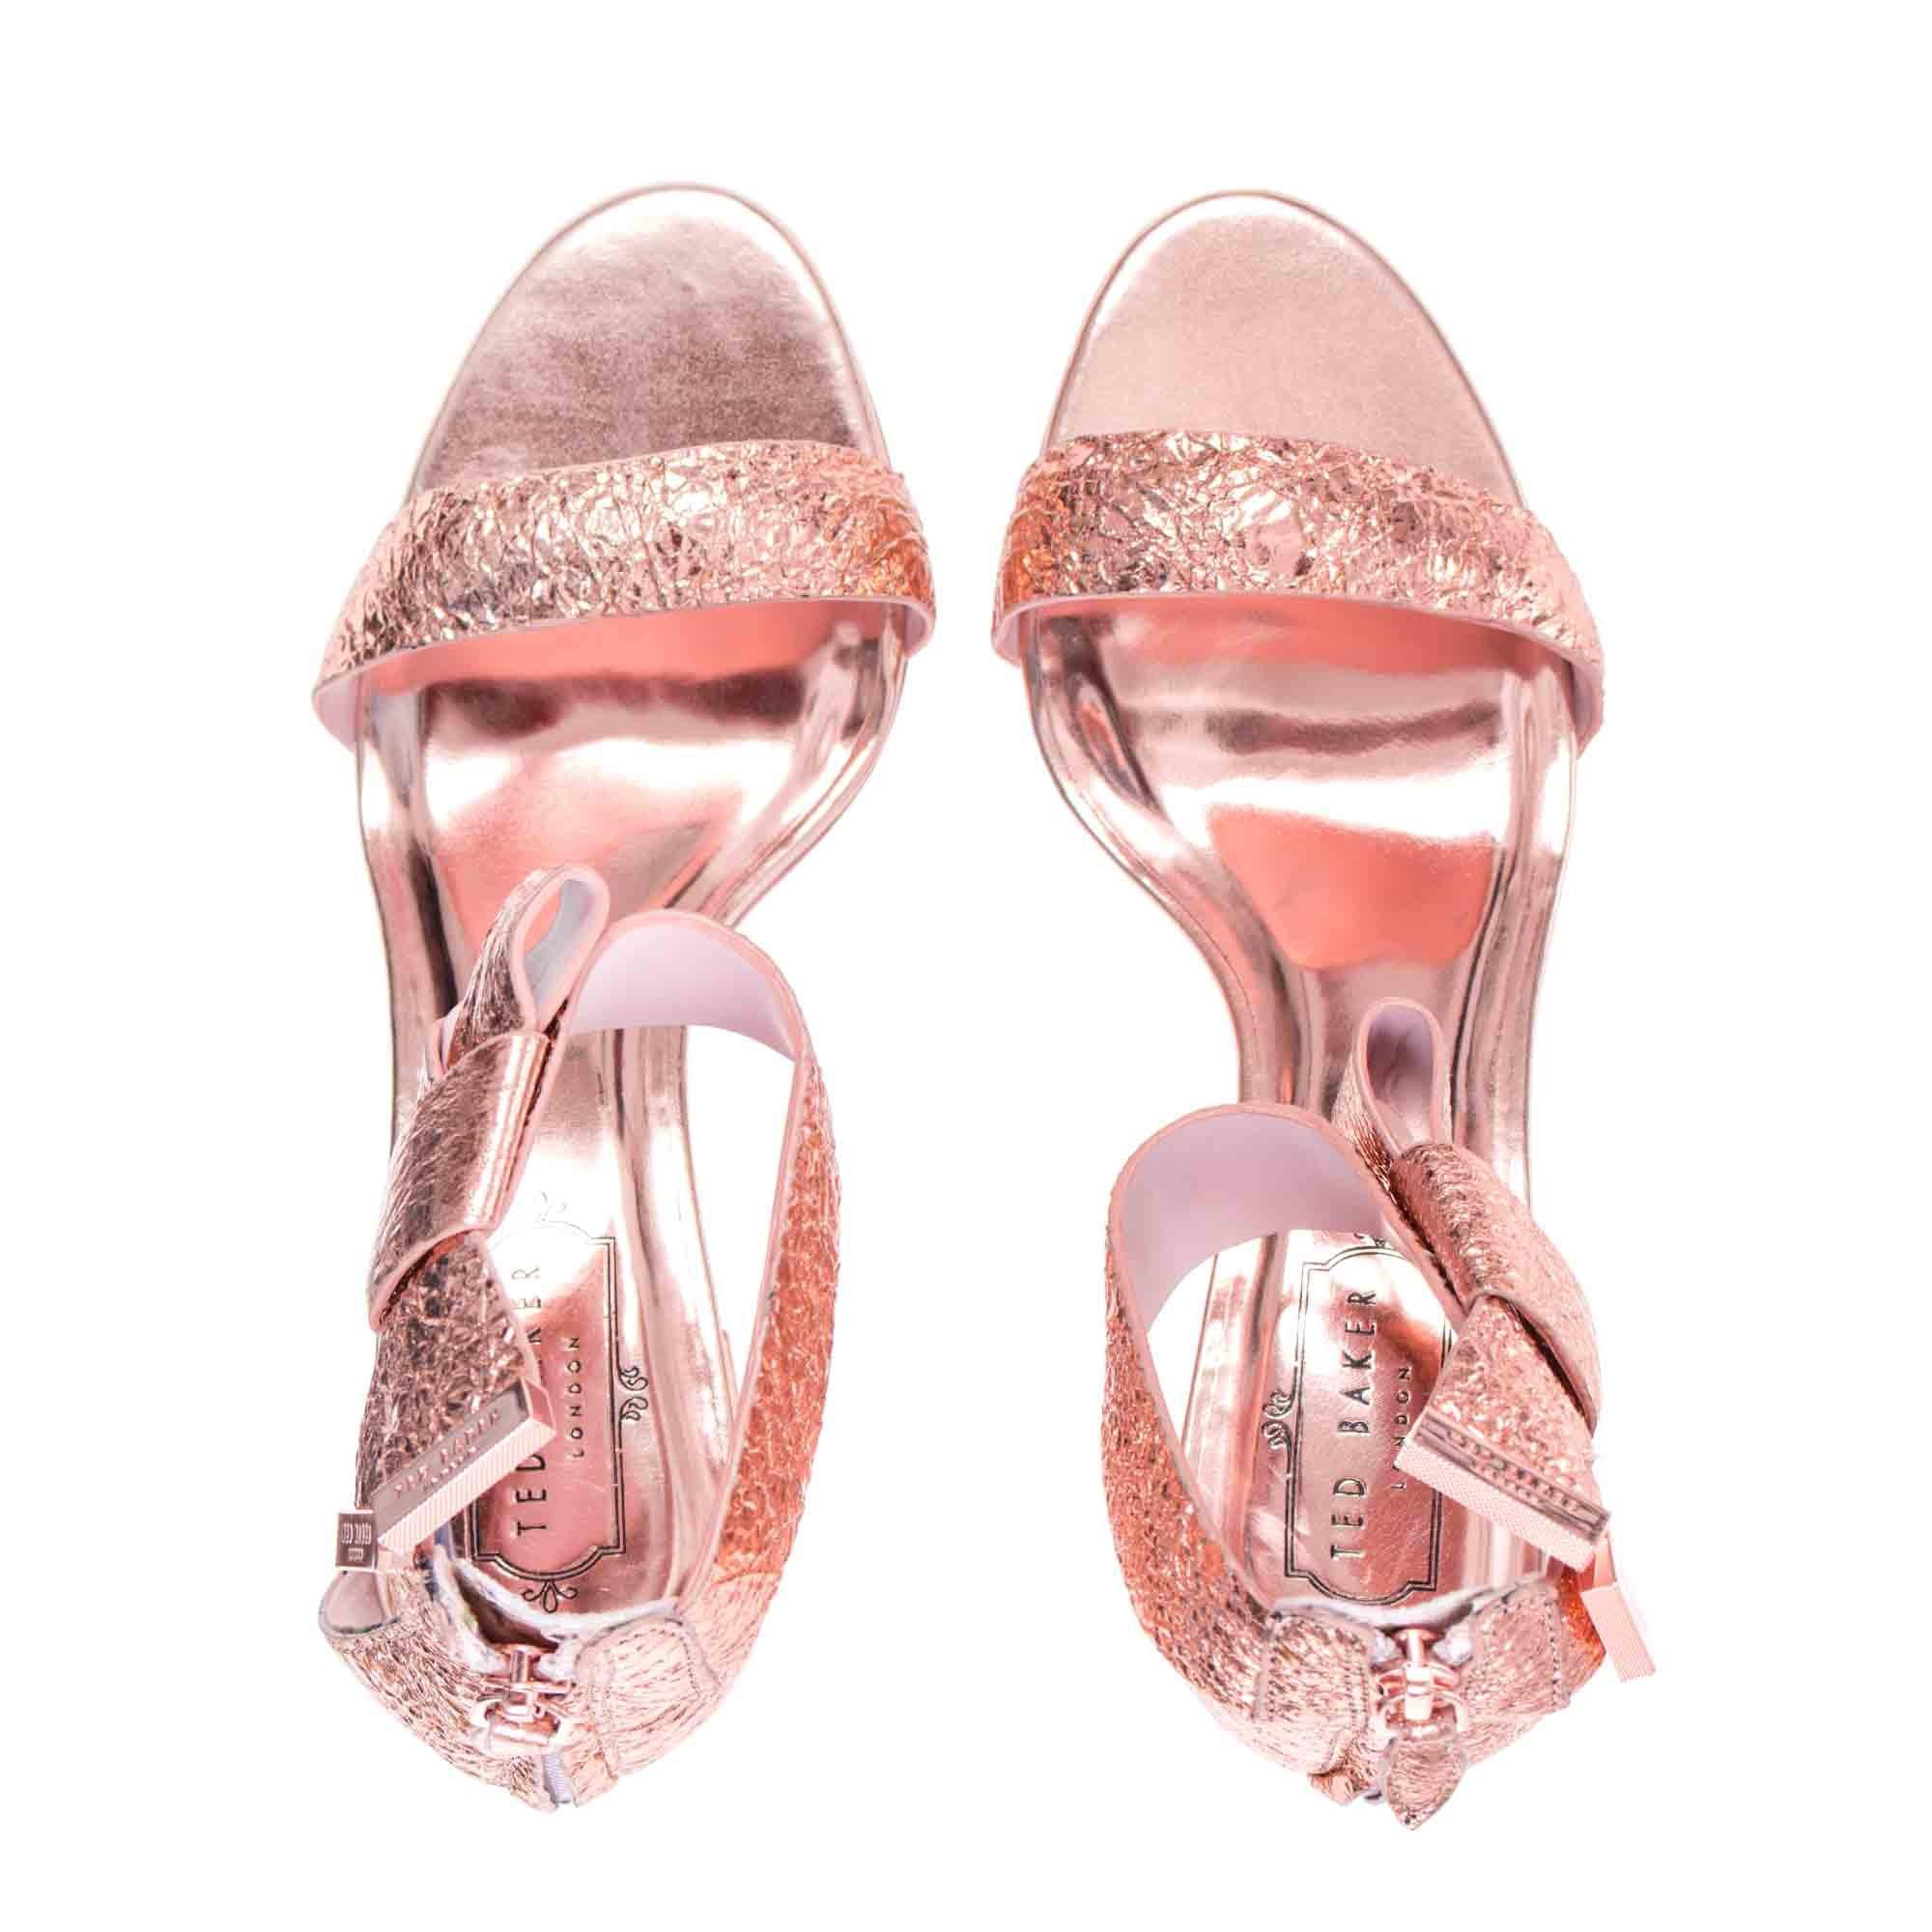 afd9fdb3d Ted Baker Kerria Knotted Bow Sandal In Rose Gold in Pink - Lyst